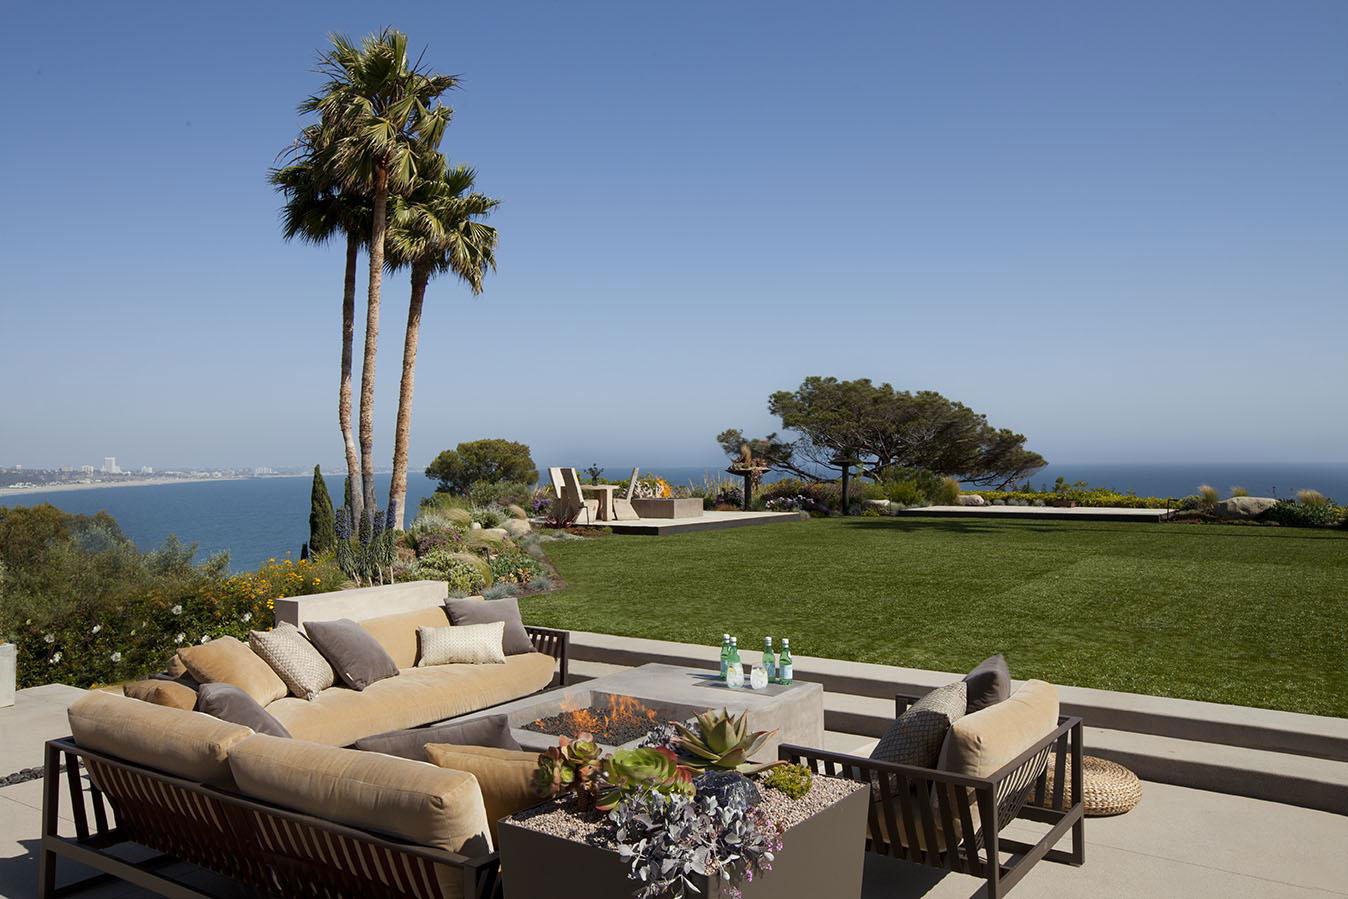 Firepit, Terrace, Lawn, Ocean Views, House in Pacific Palisades, Los Angeles